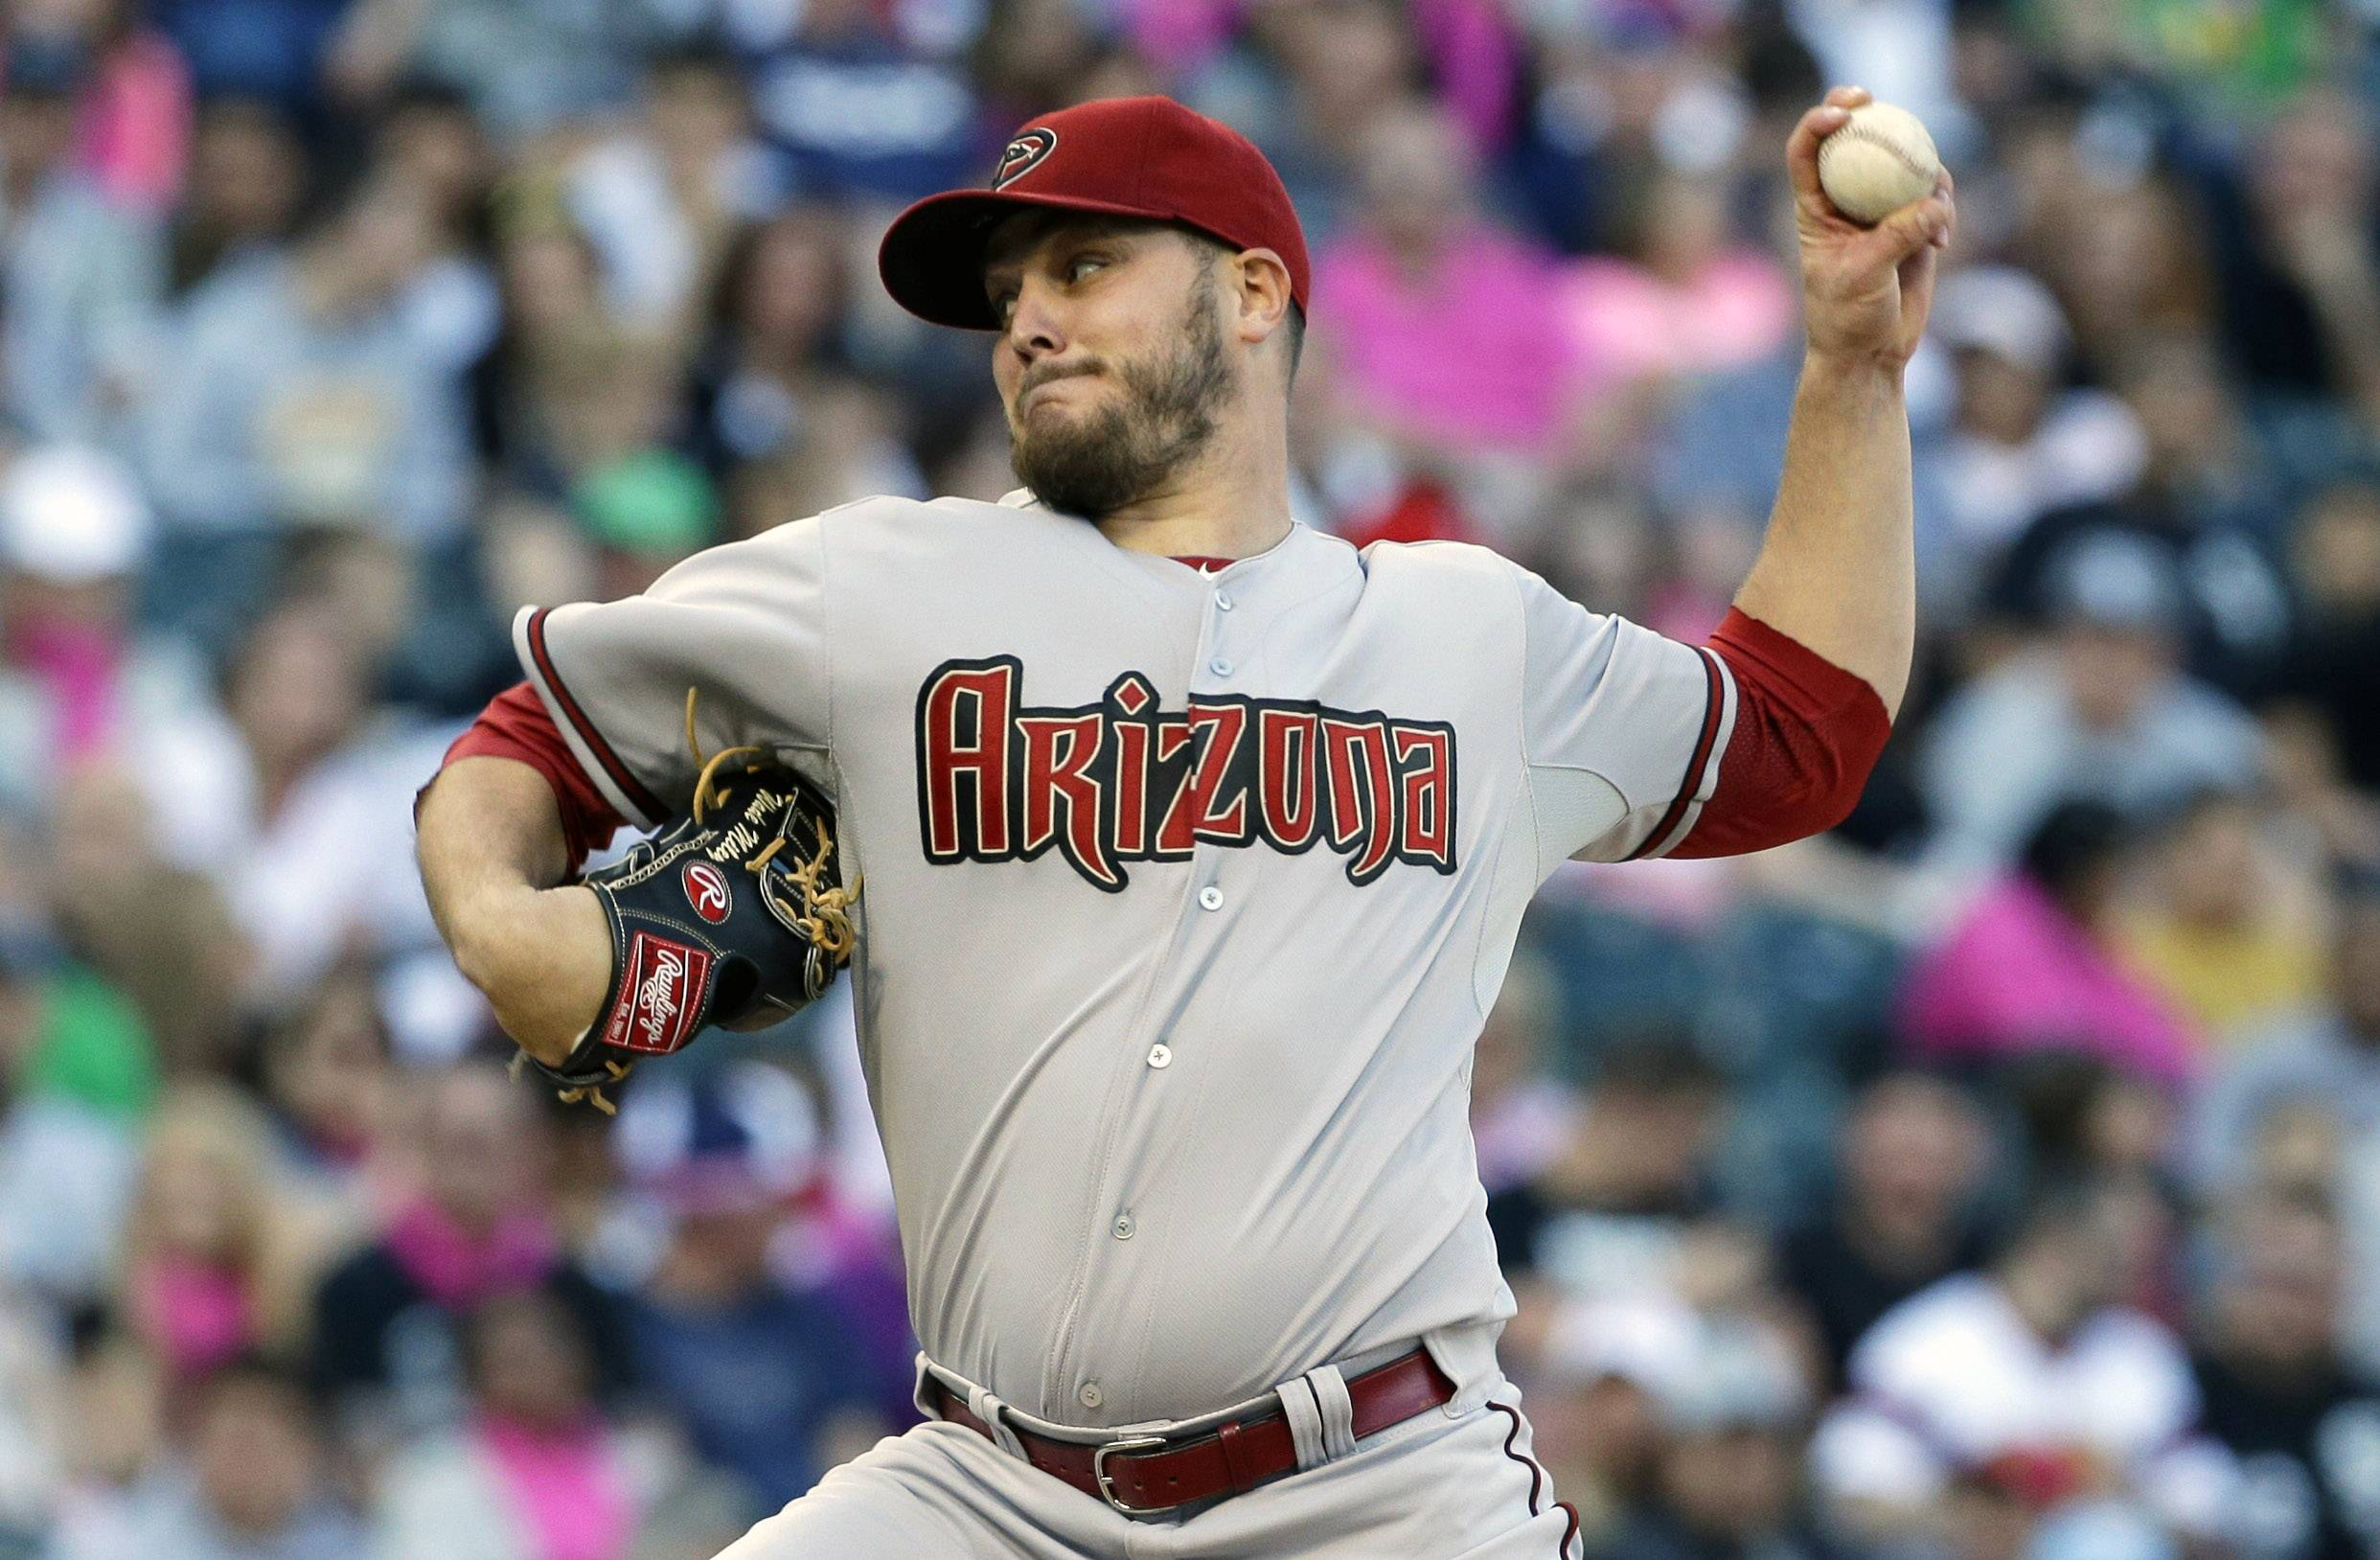 Arizona Diamondbacks starter Wade Miley struck out six in a win over the White Sox on Saturday in Chicago.